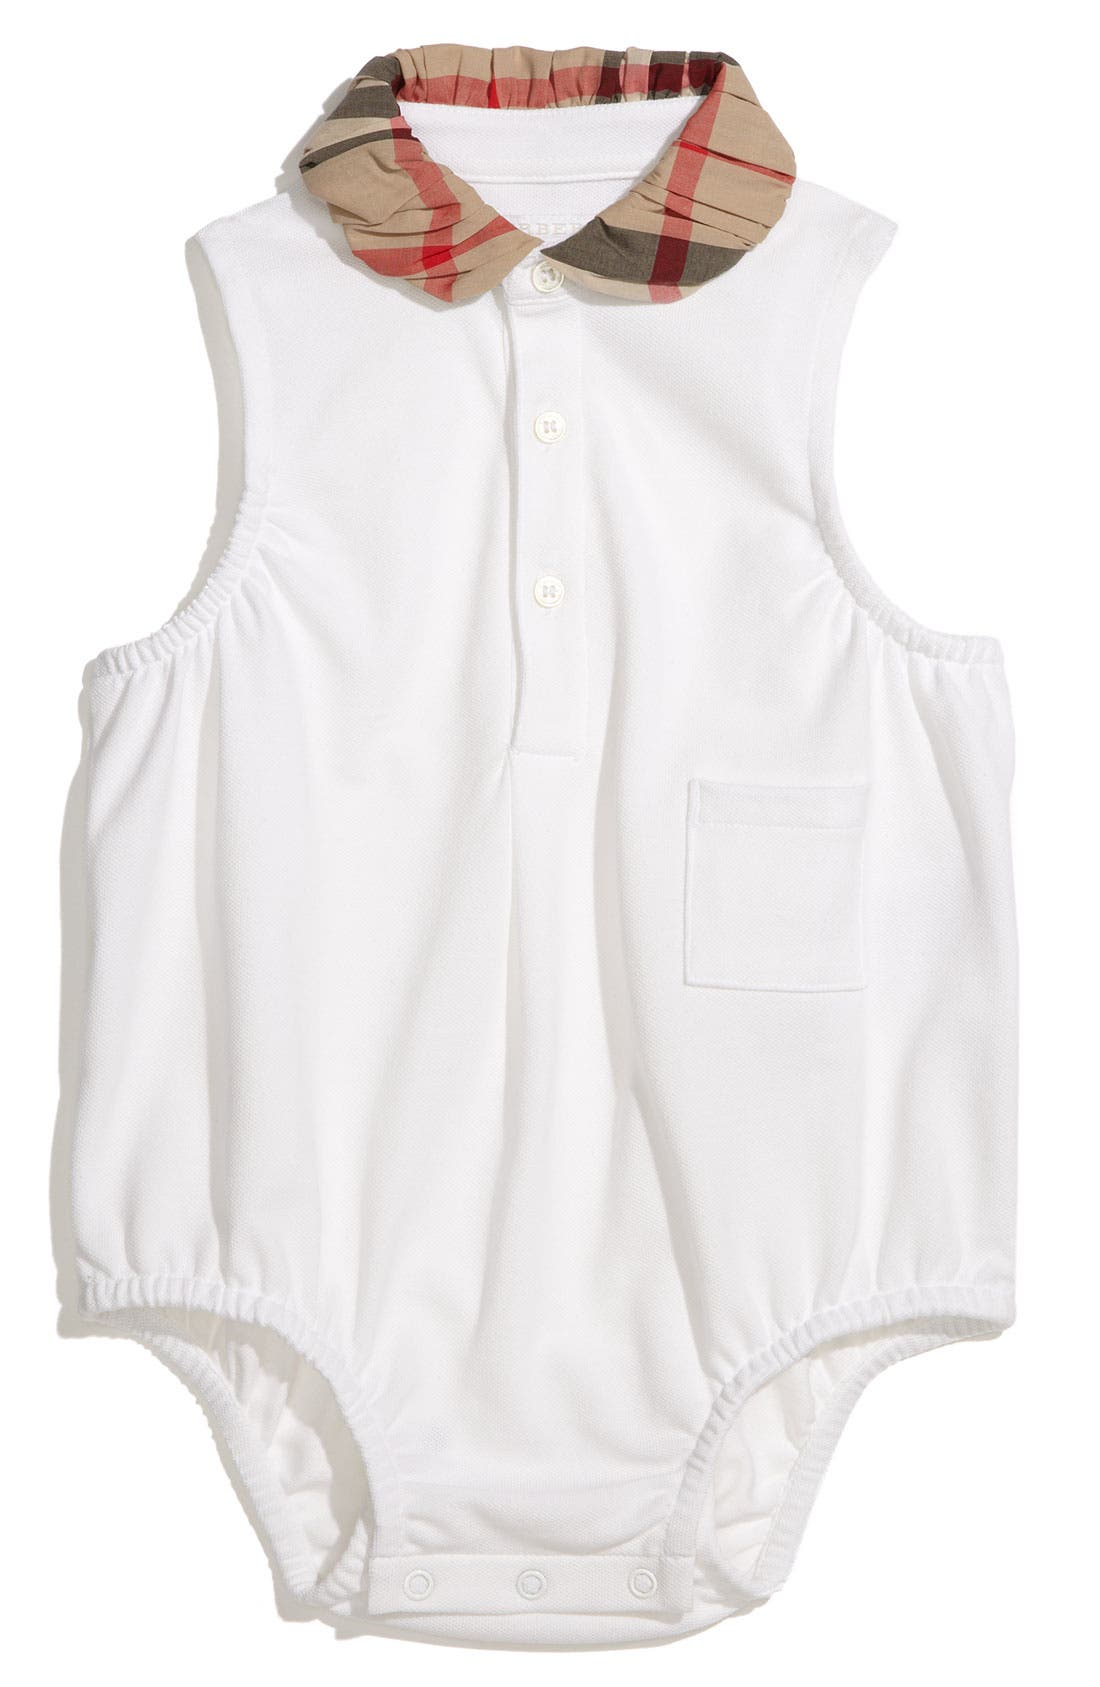 Main Image - Burberry Check Print Bodysuit (Infant)